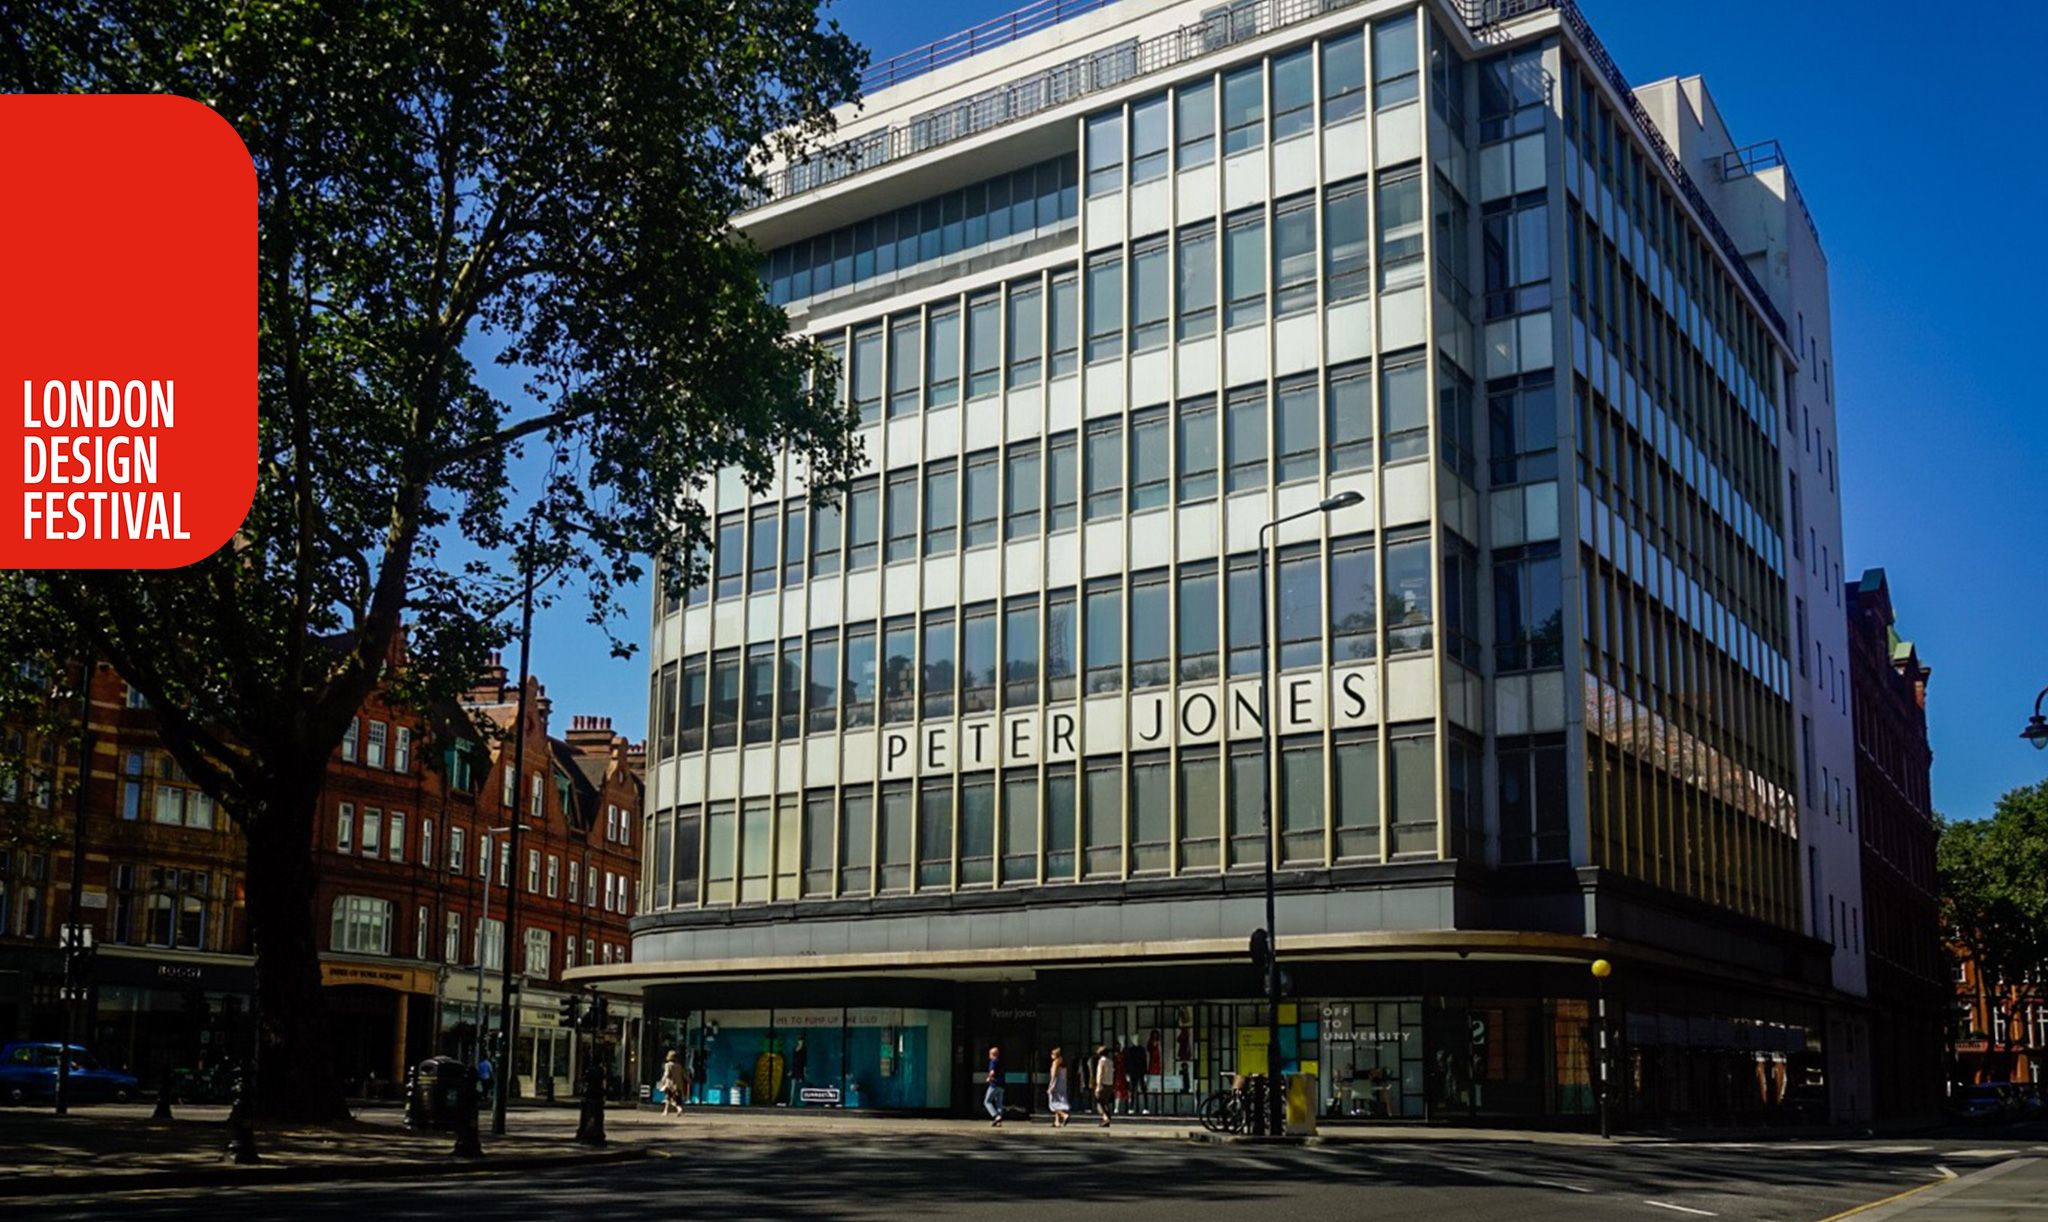 Peter Jones & Partners + The London Design Festival